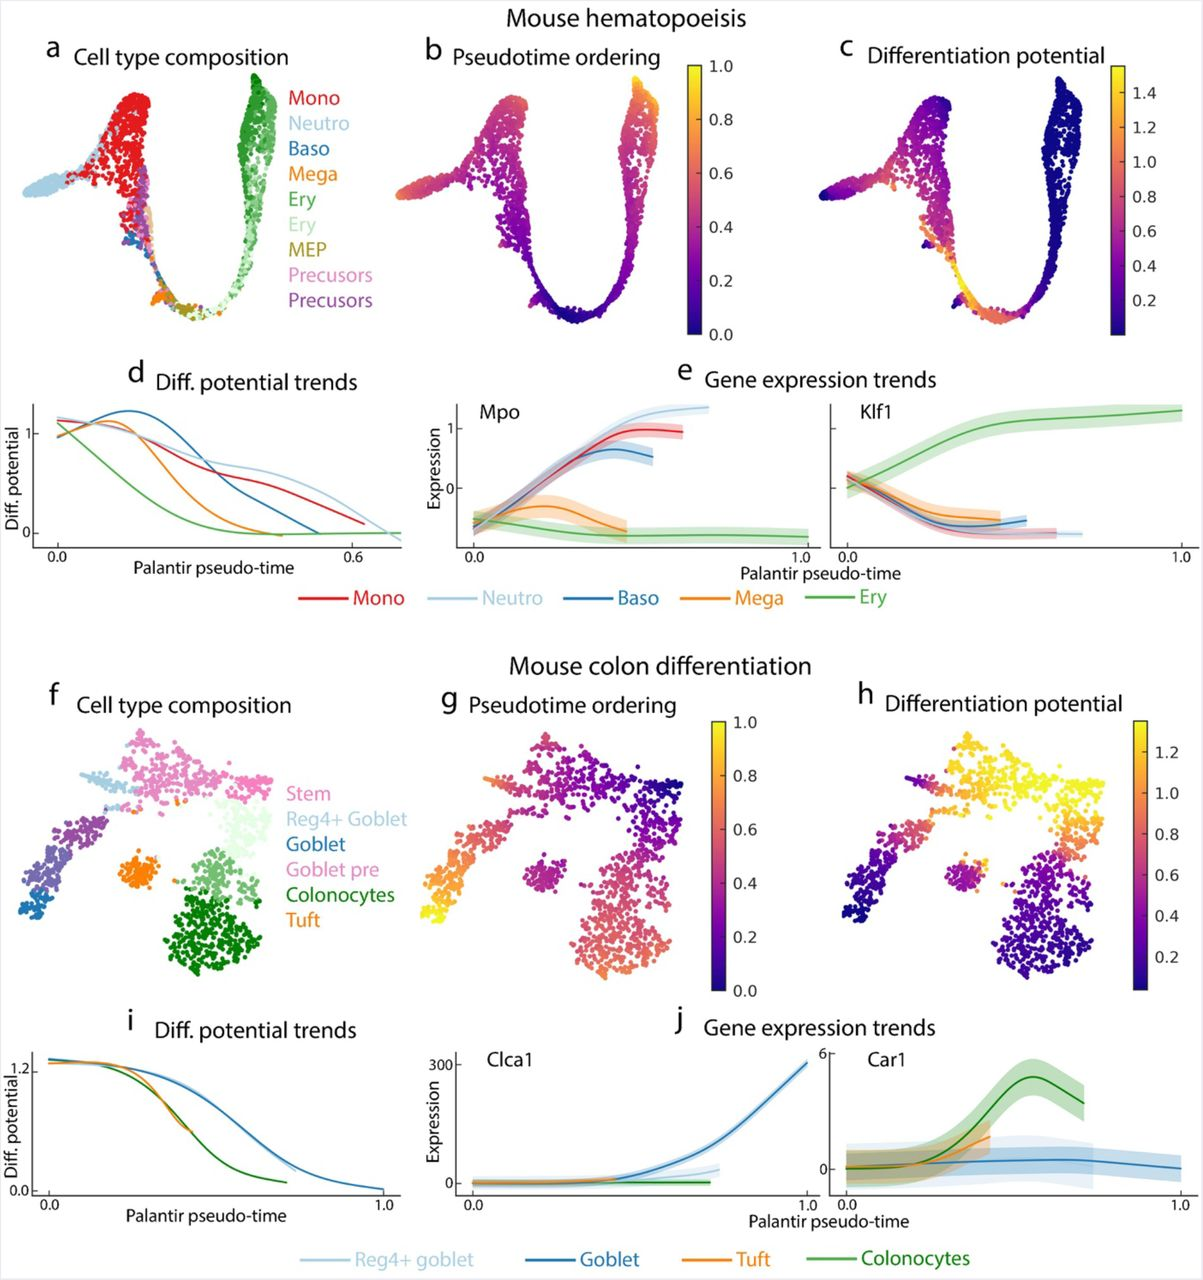 Palantir characterizes cell fate continuities in human